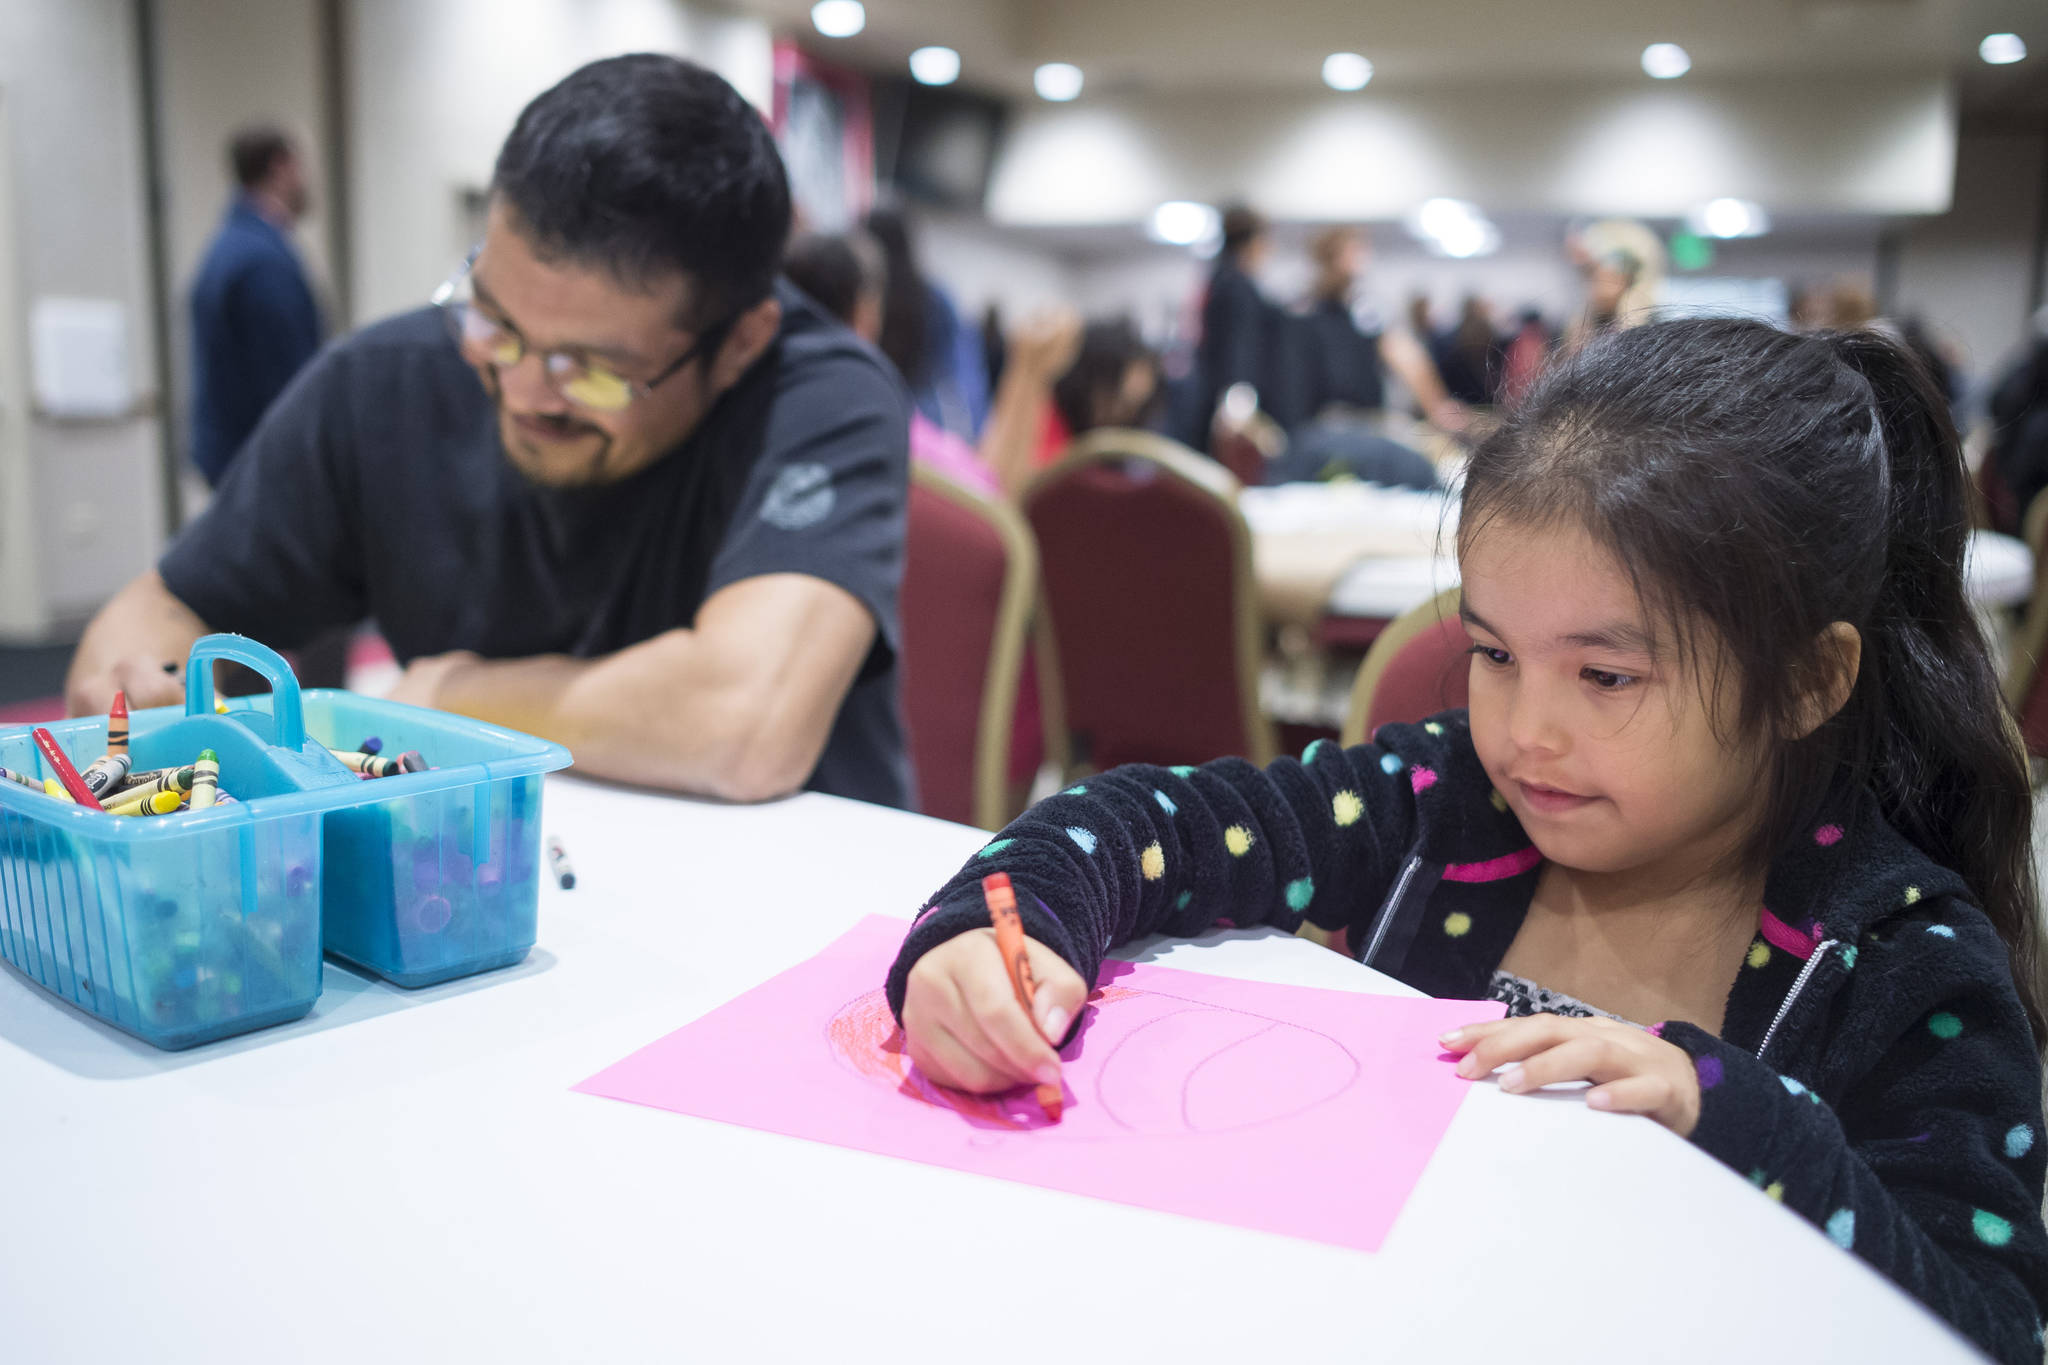 Carl Stepetin draws with his daughter, Pauline, 6, during a Celebrate Survivors gathering sponsored by Central Council Tlingit and Haida Indian Tribes of Alaska and AWARE in the Elizabeth Peratrovich Hall on Tuesday, Oct. 23, 2018. October is Domestic Violence Awareness Month. (Michael Penn | Juneau Empire)